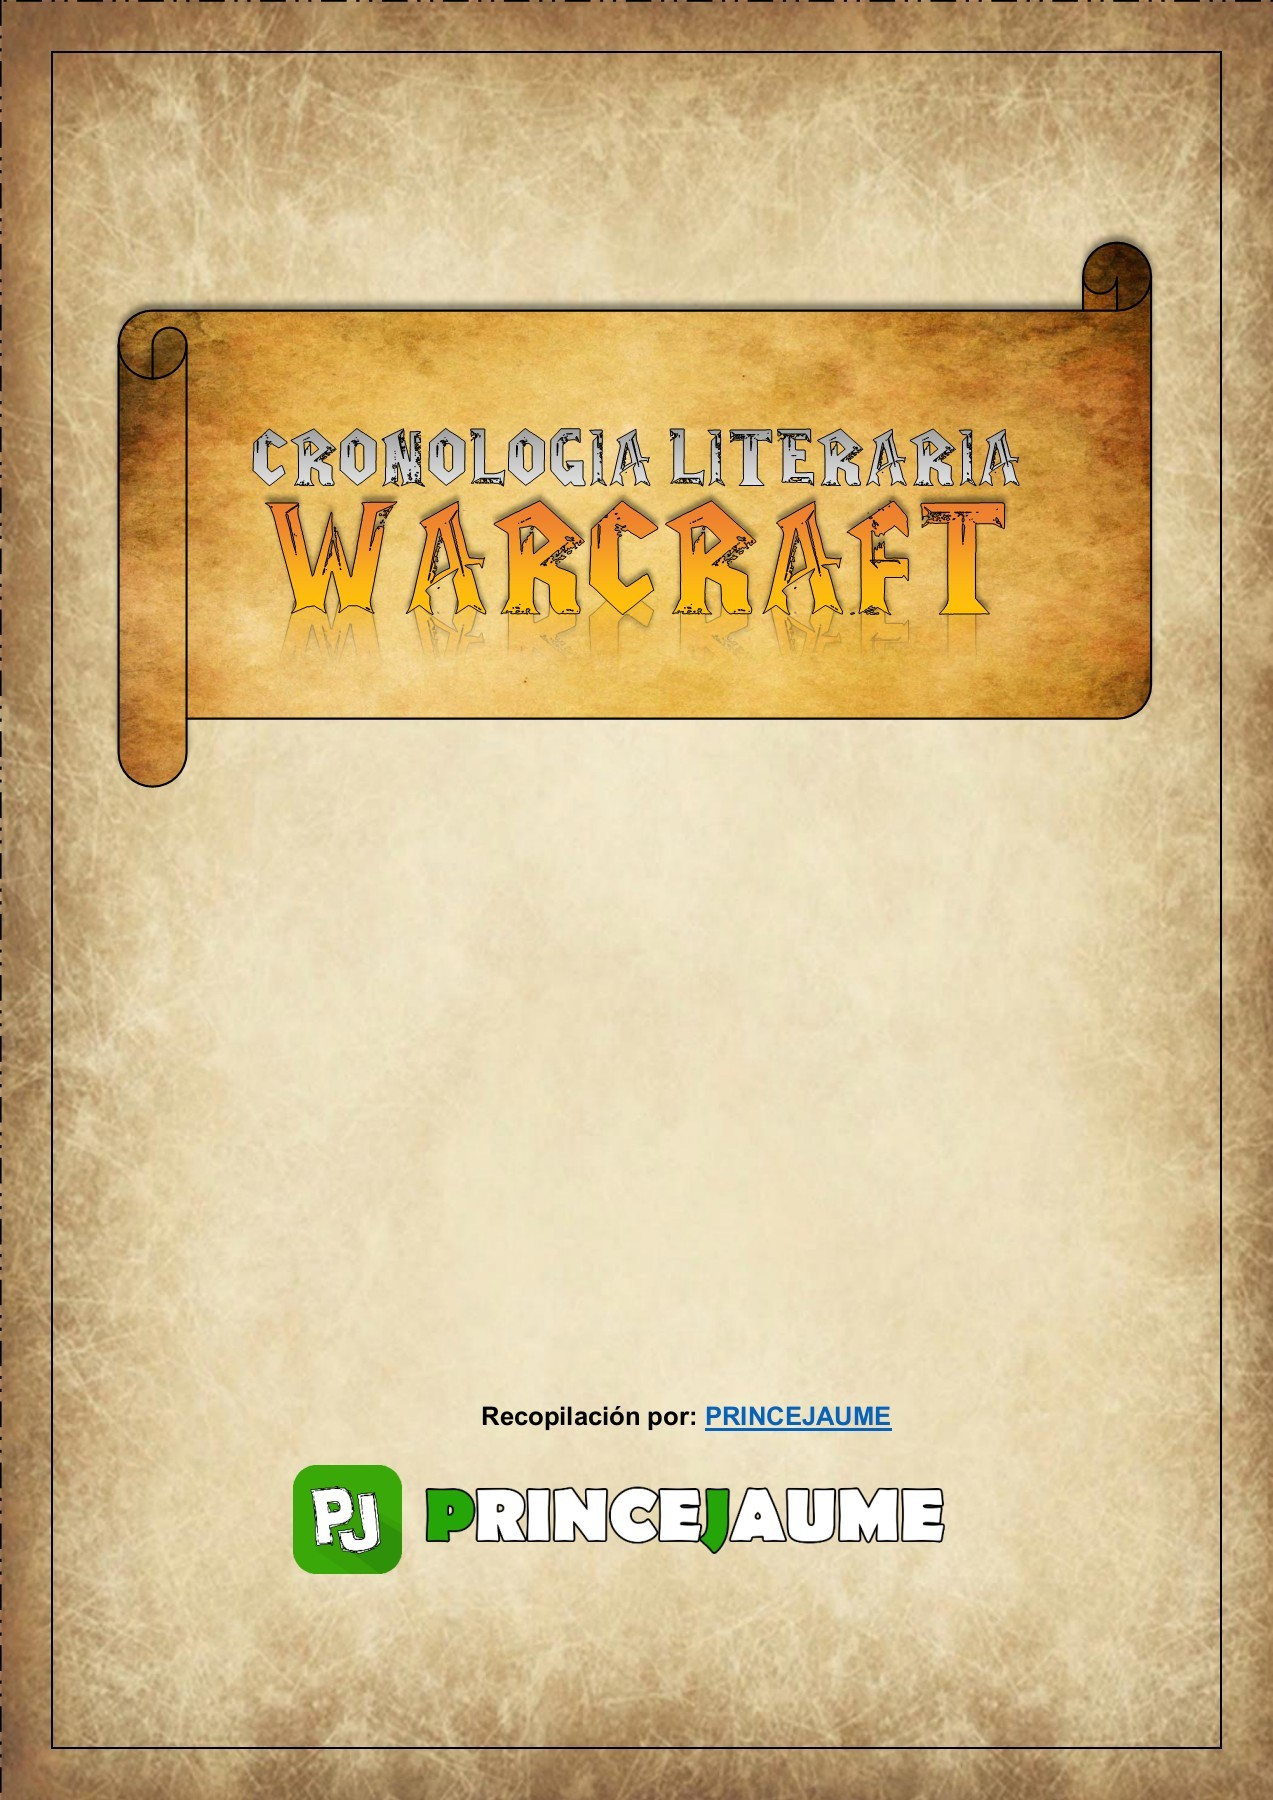 Descargar Libros Warcraft Cronología Literaria Warcraft Act 26 05 2017 Pages 1 11